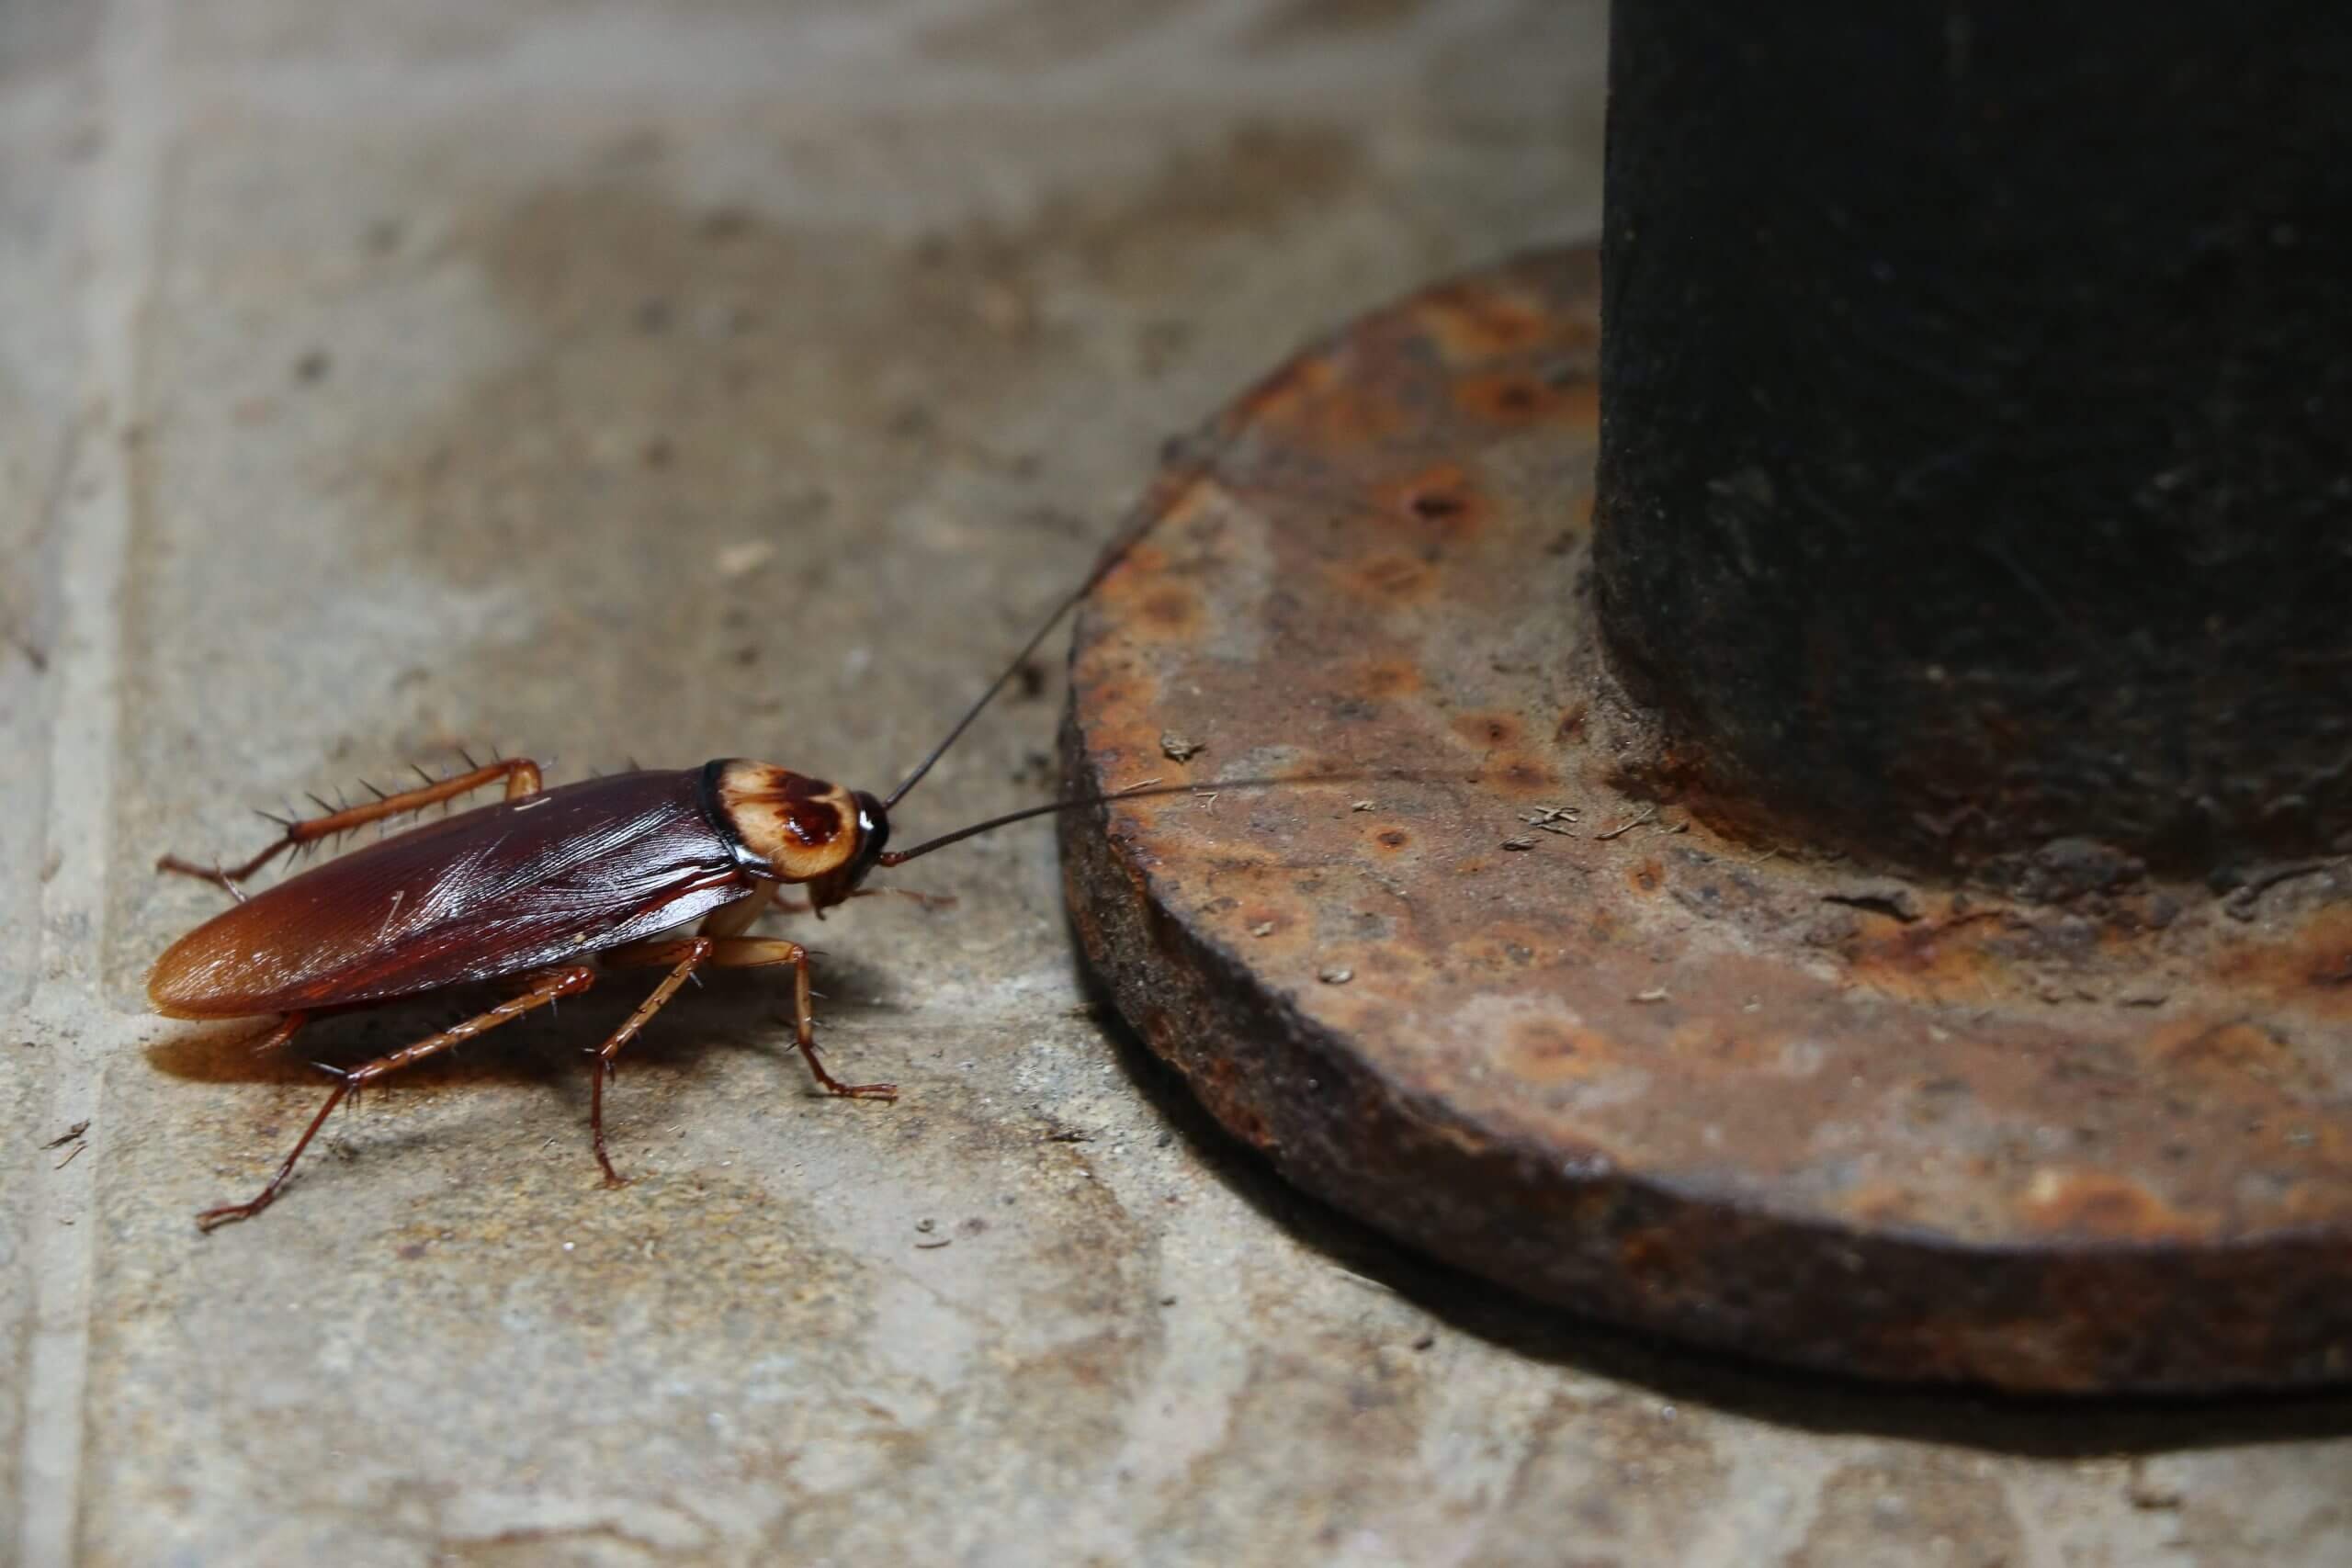 Food waste consumed by cockroaches